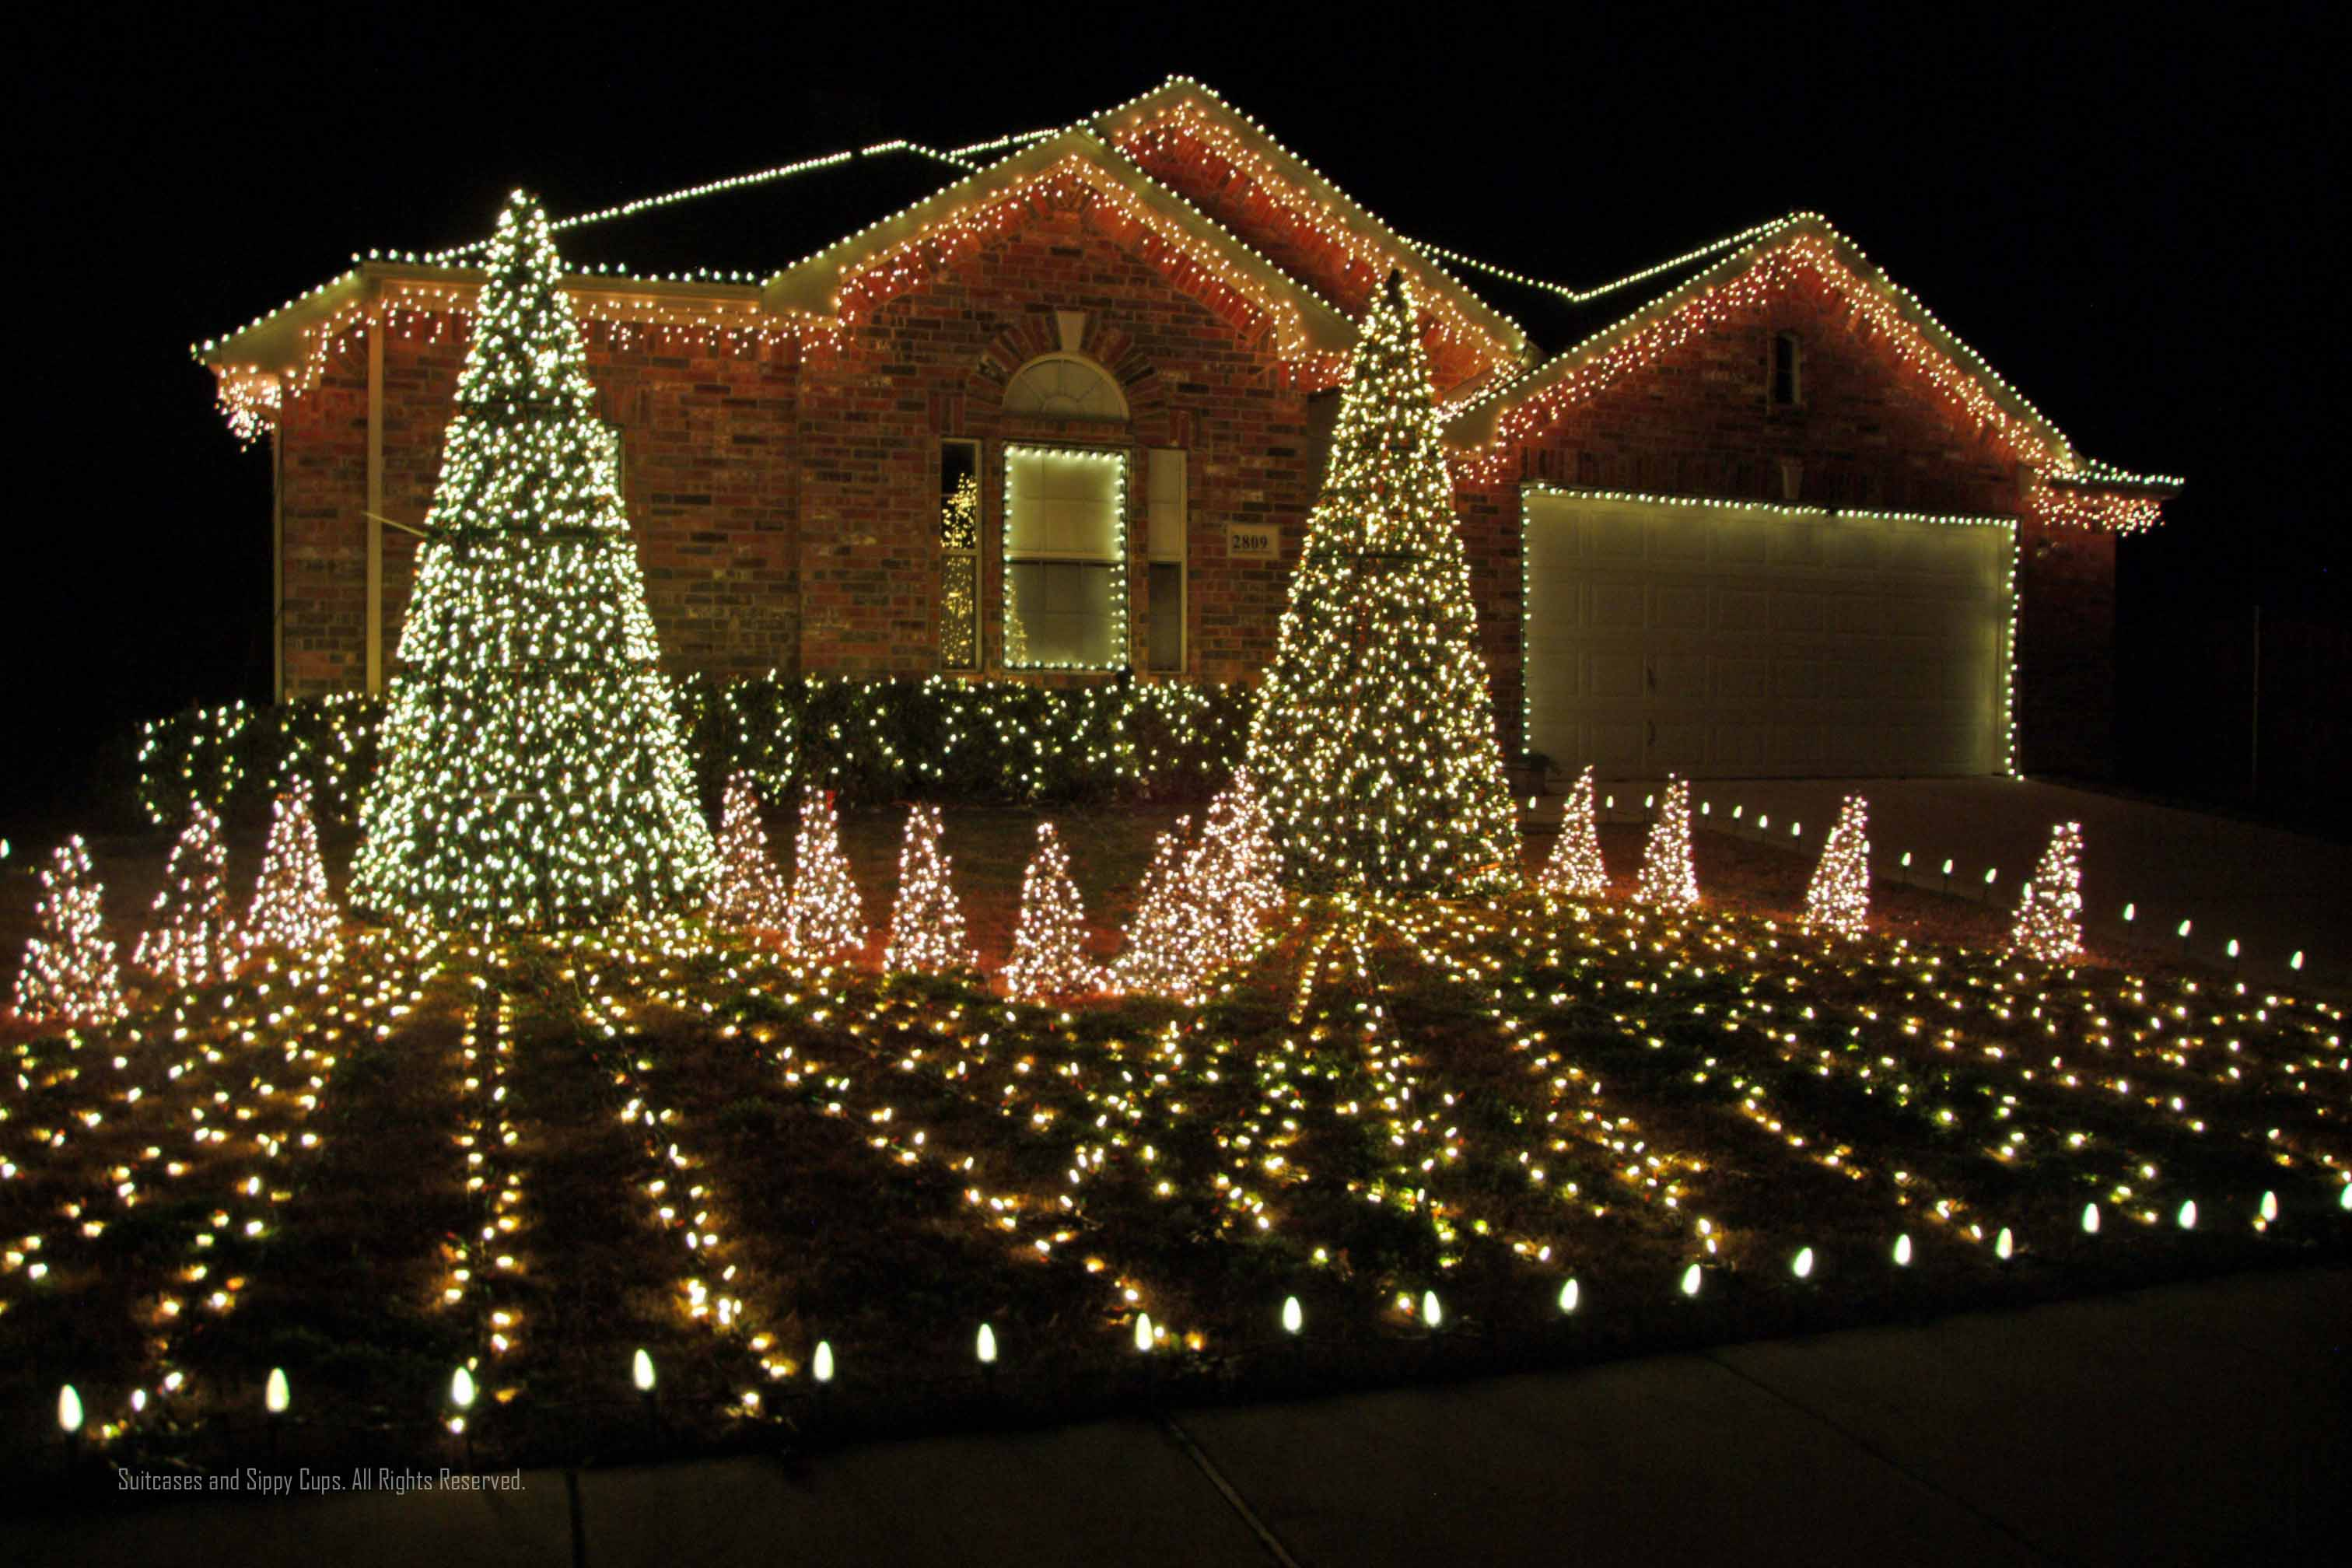 computerized christmas lights and cocoa suitcases and sippy cups - How To Put Christmas Lights On Roof